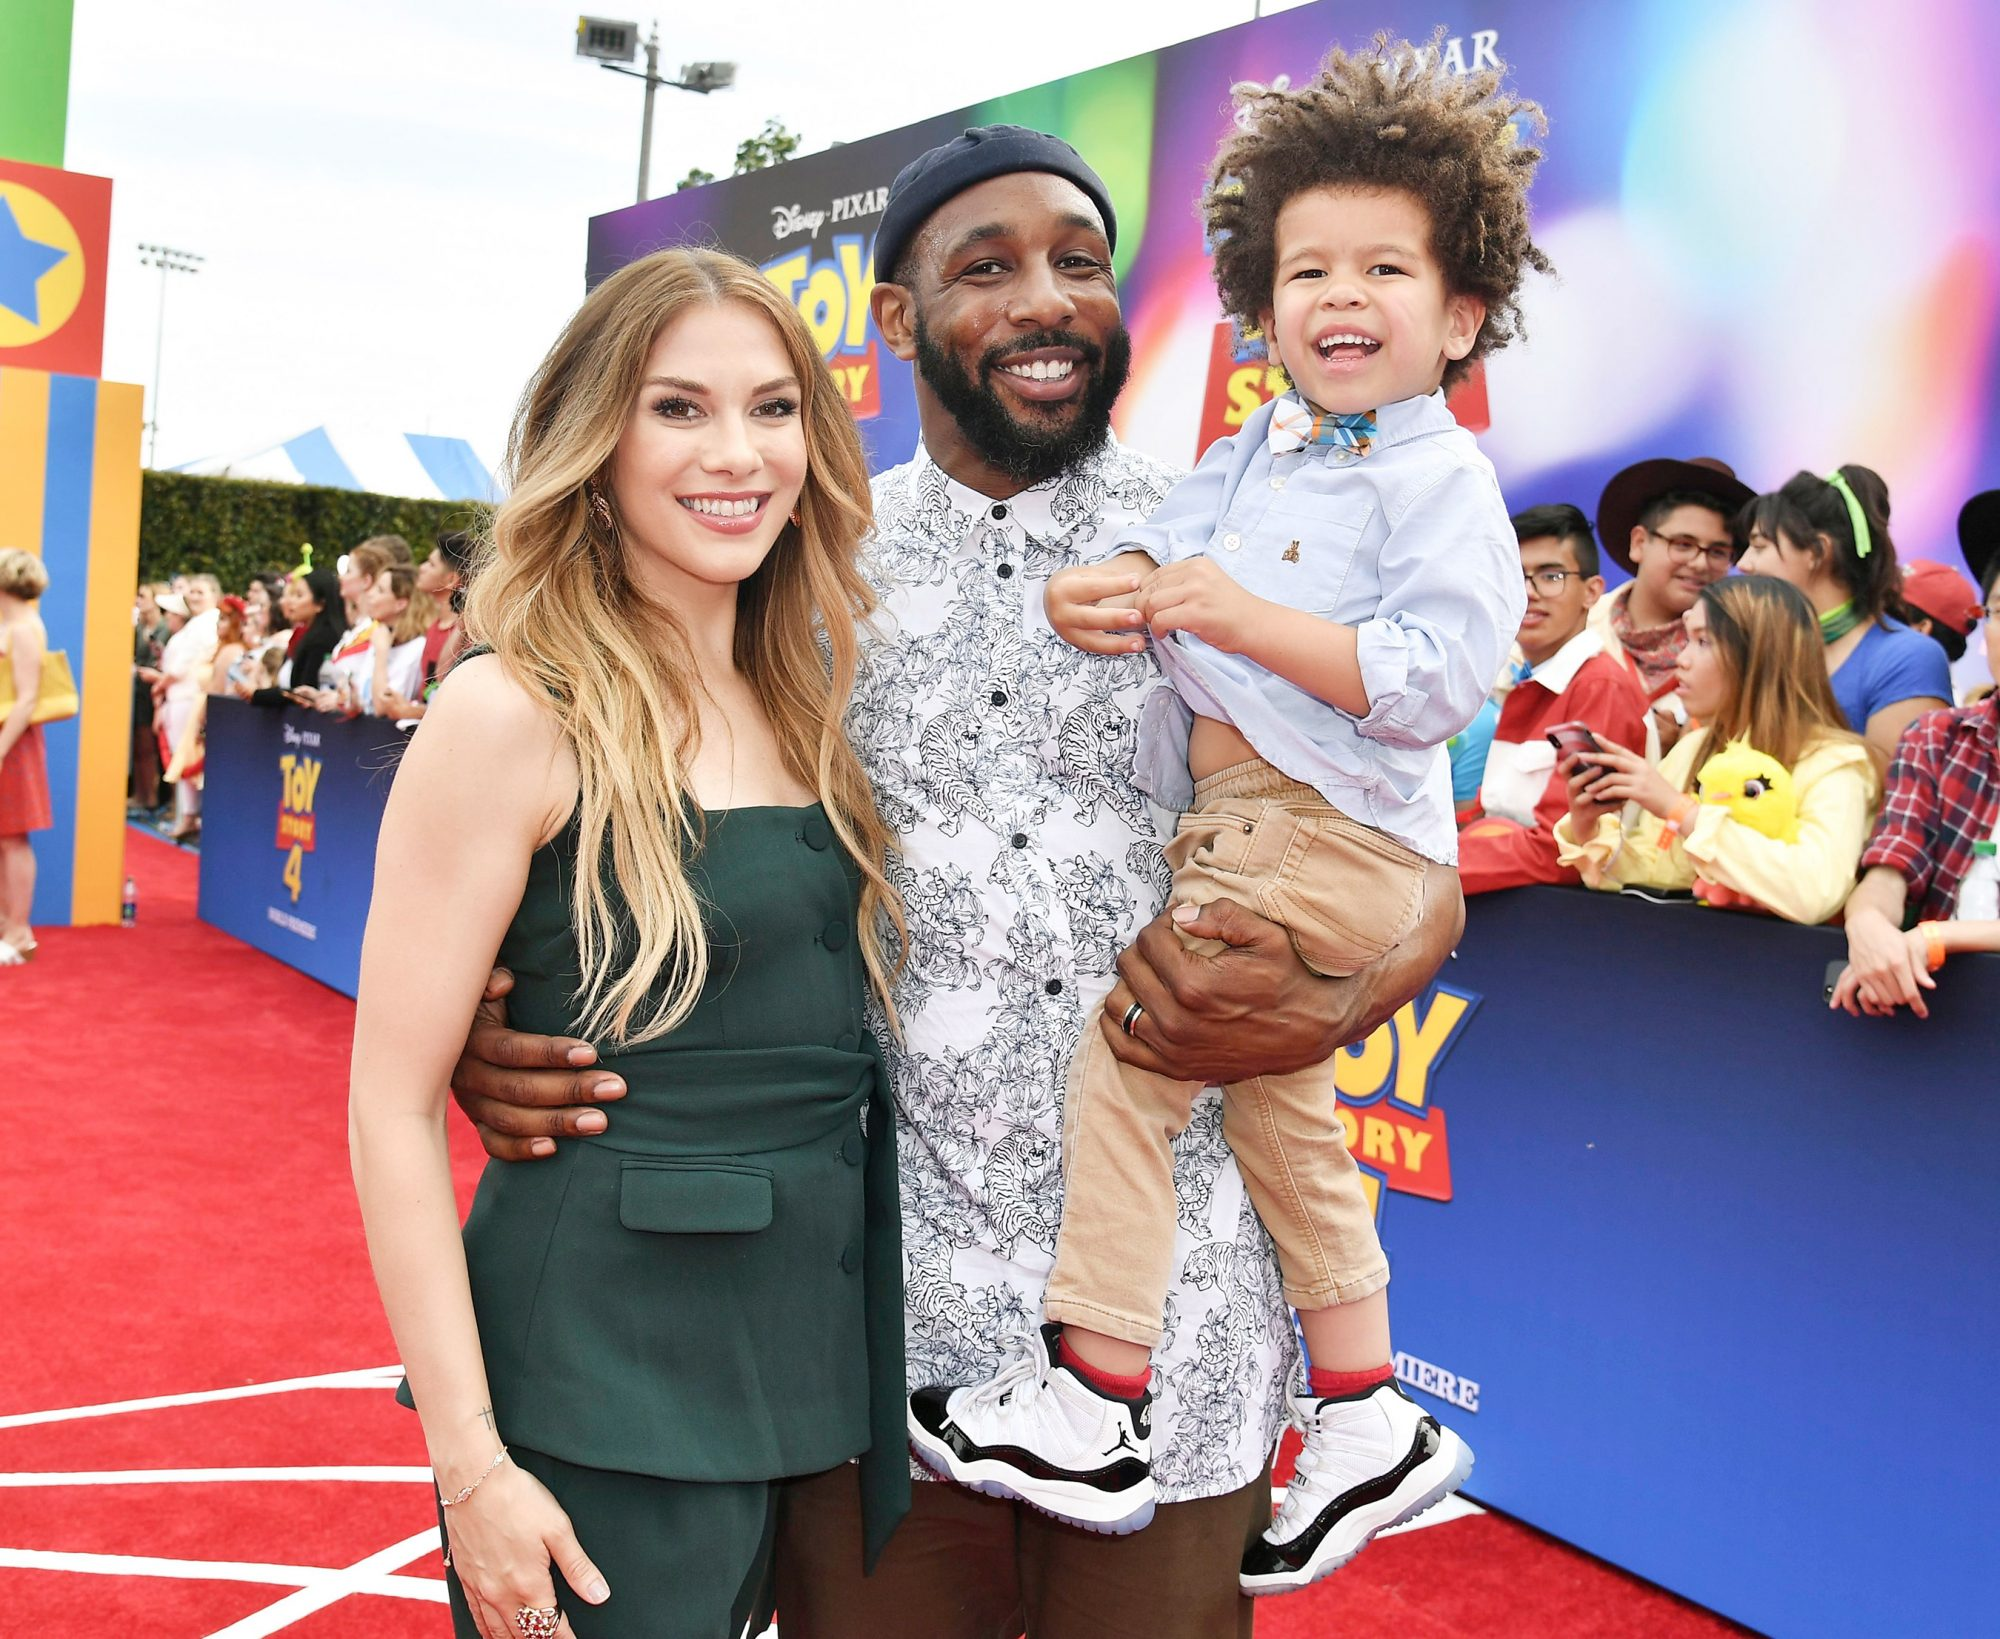 Allison Holker, Stephen 'tWitch' Boss and Maddox Boss